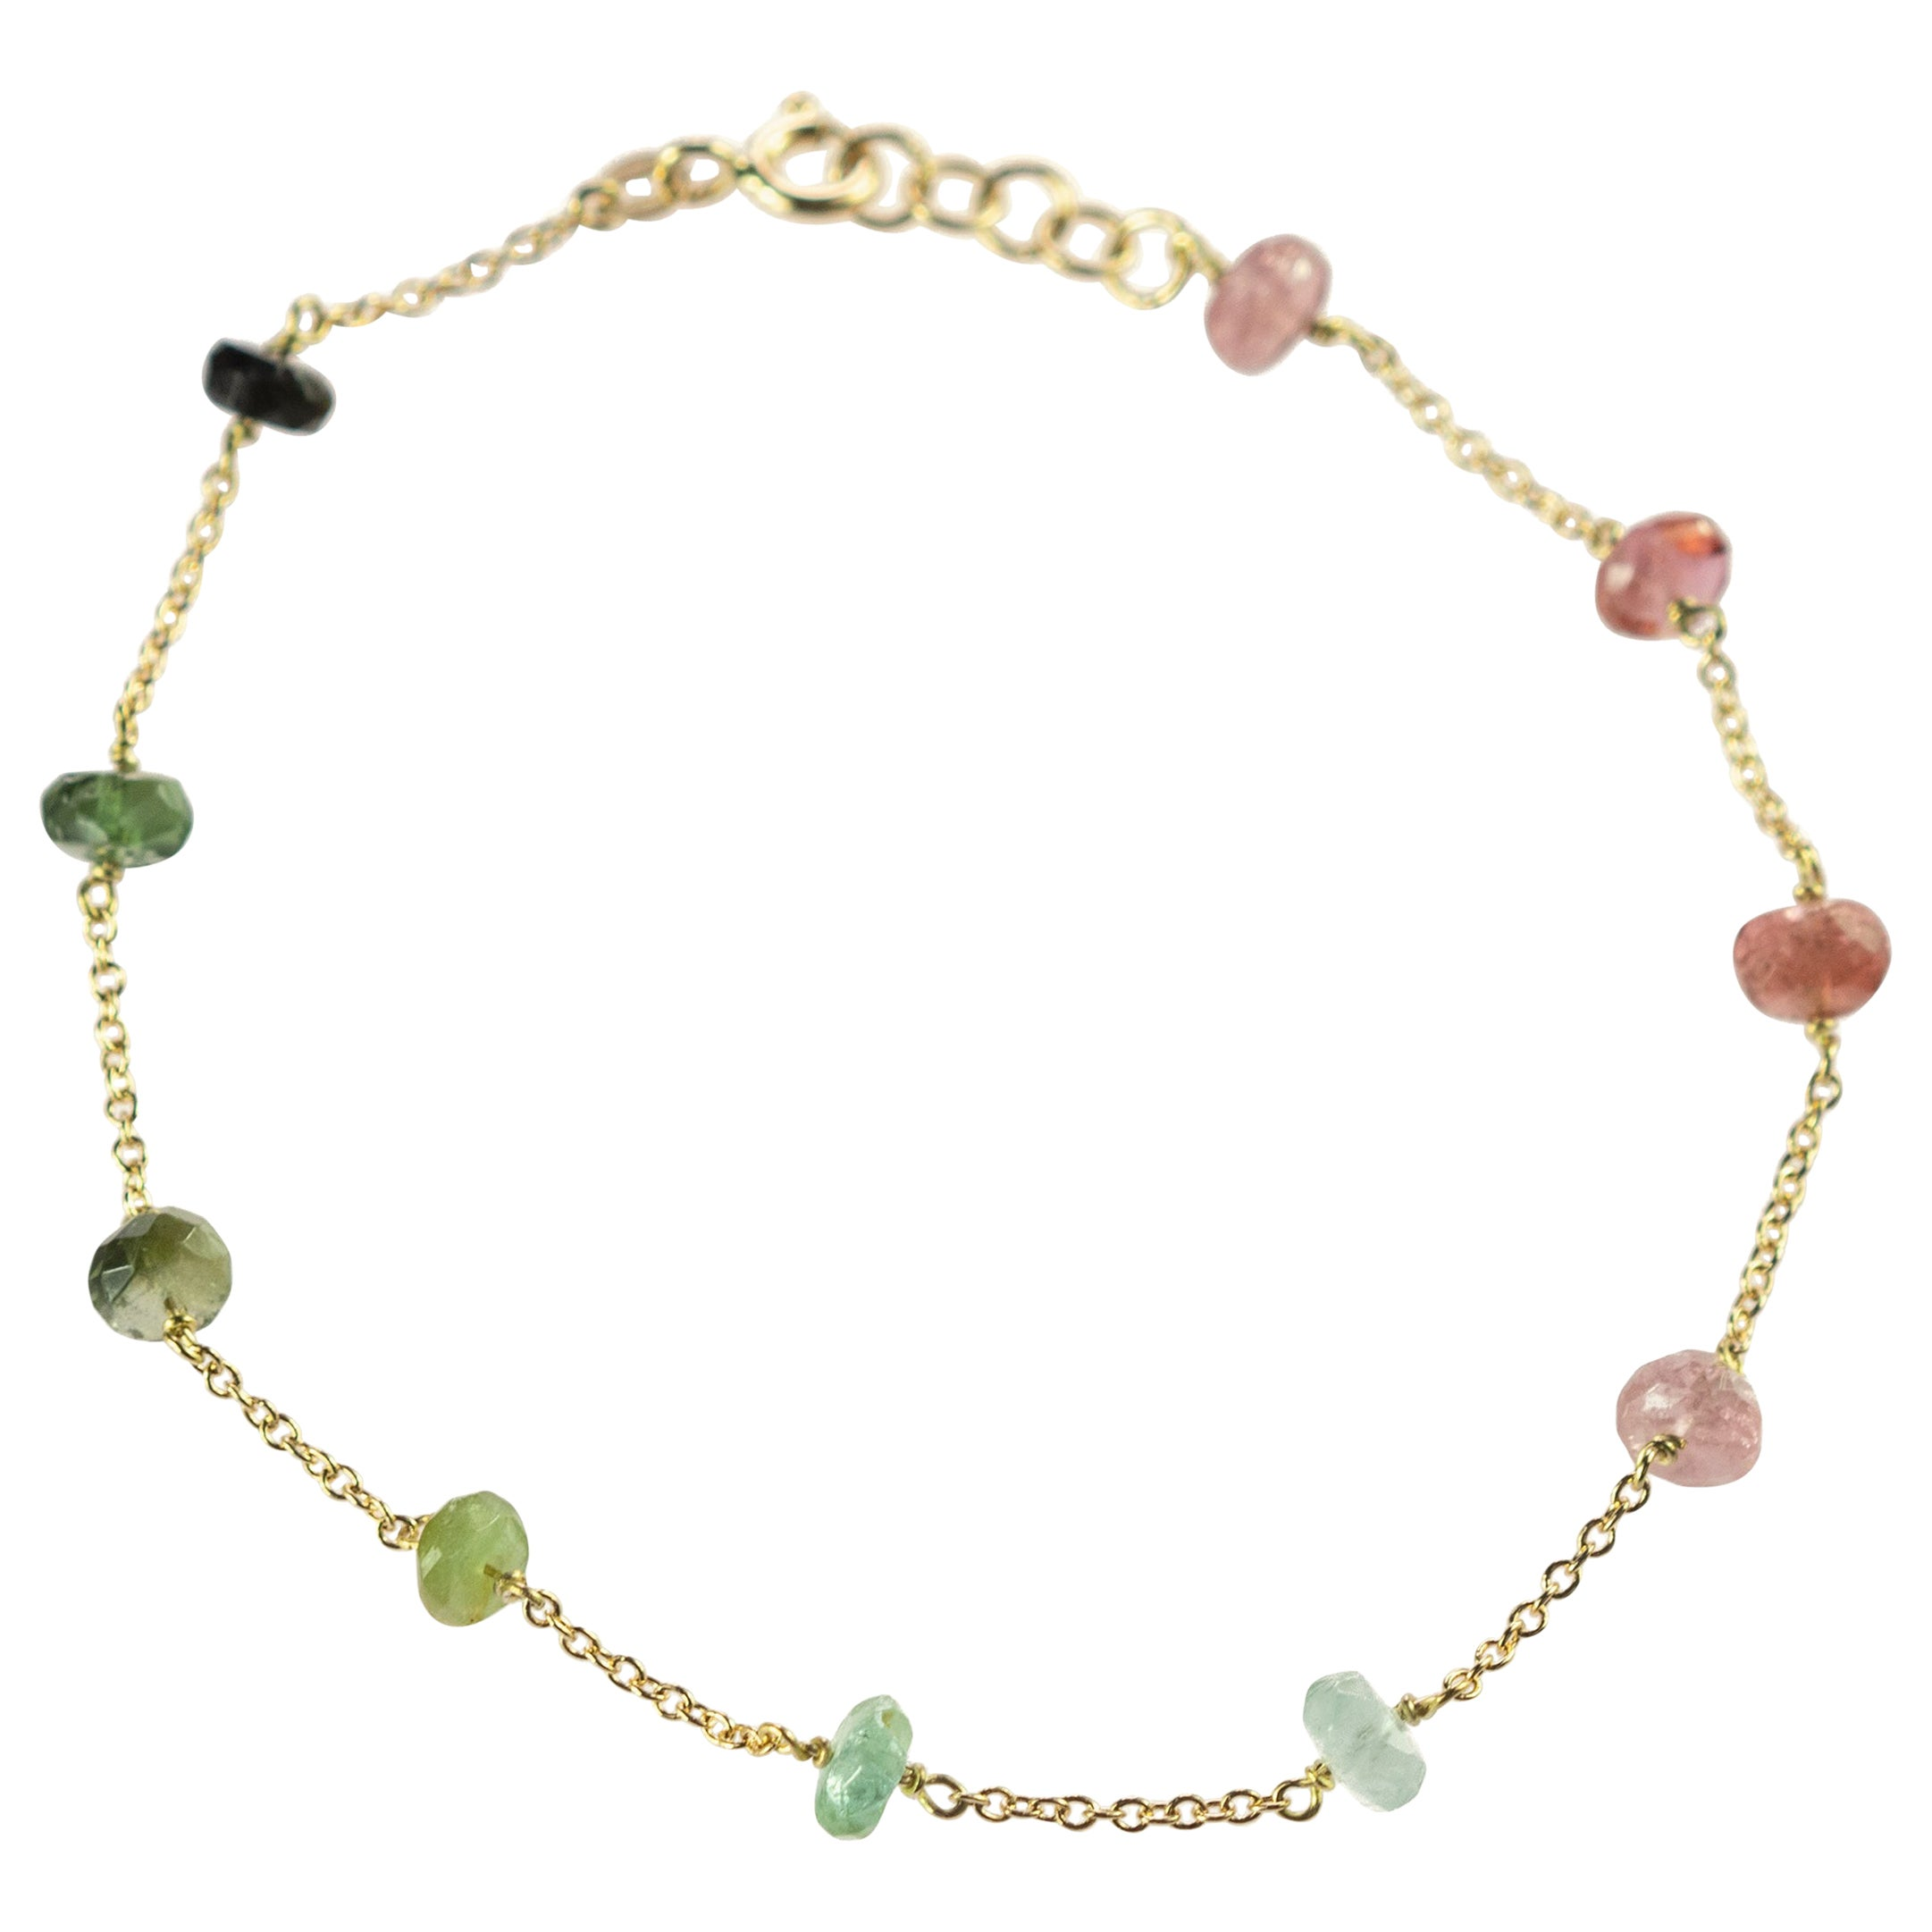 Intini Jewes 18 Karat Gold Chain Tourmaline Rondelles Colorful Rainbow Bracelet